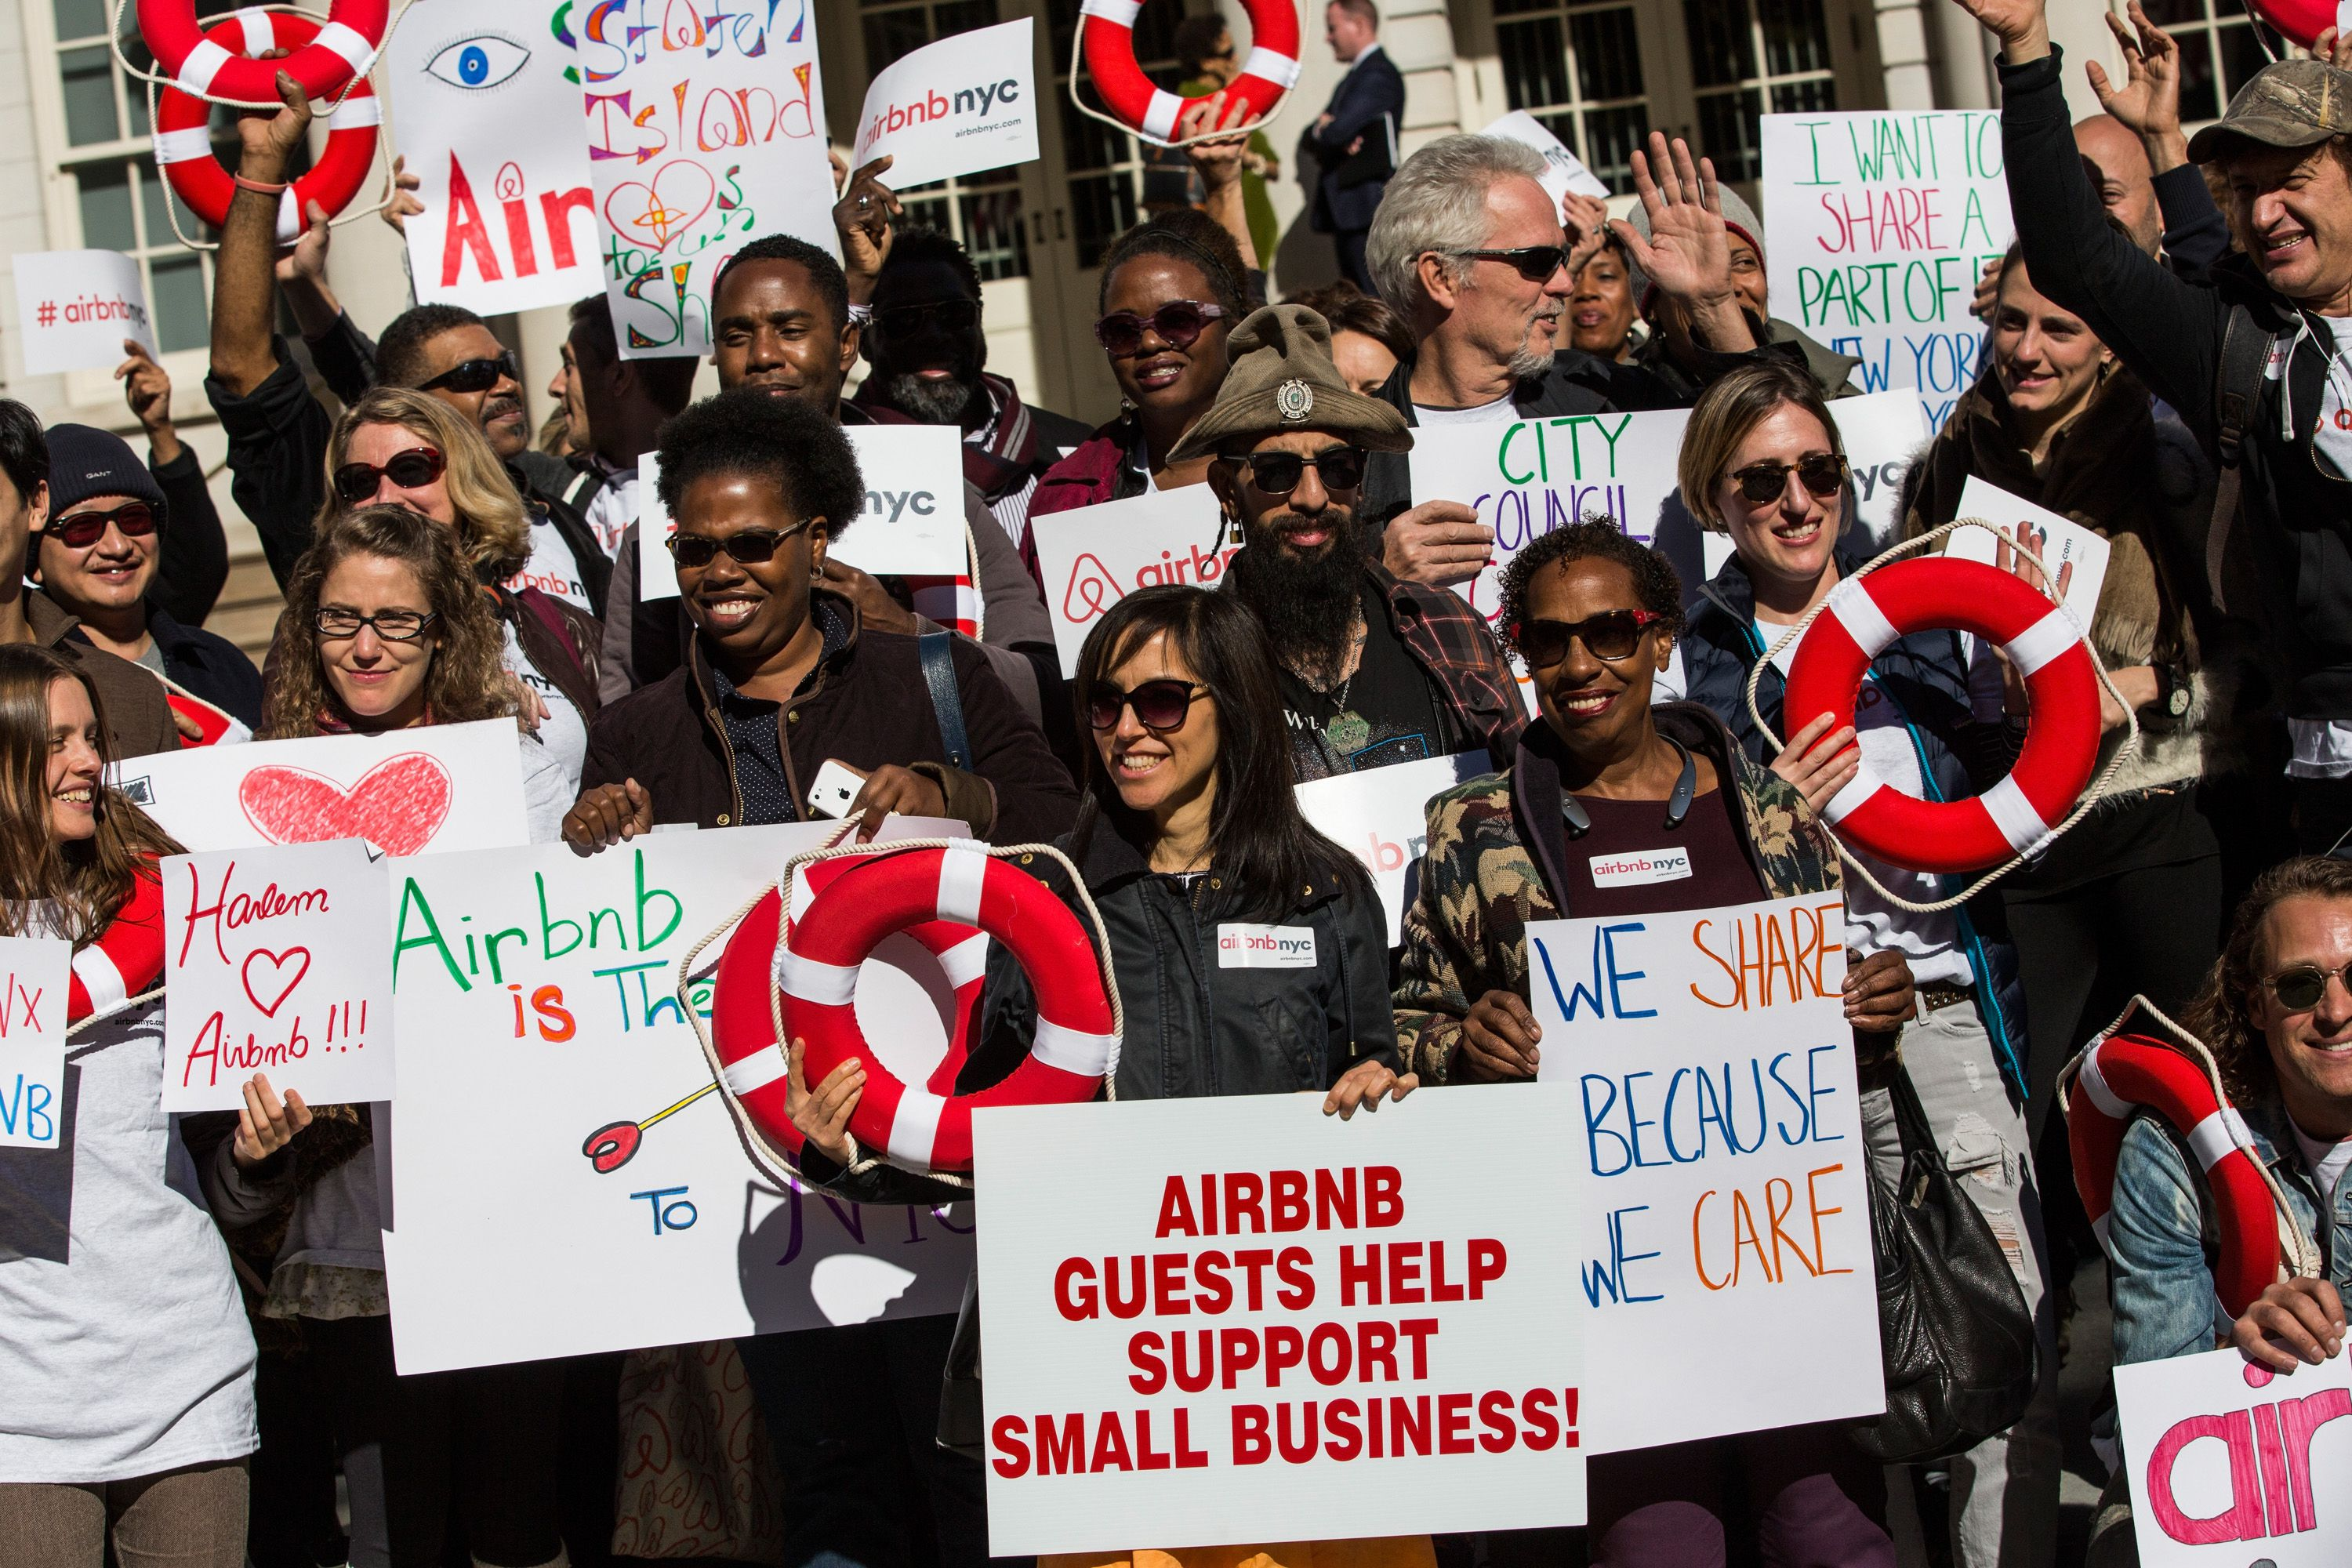 NEW YORK, NY - OCTOBER 30: Supporters of Airbnb hold a rally on the steps of New York City Hall showing support for the company on October 30, 2015 in New York City. The New York City council is currently debating how to regulate the controversial company. (Photo by Andrew Burton/Getty Images)